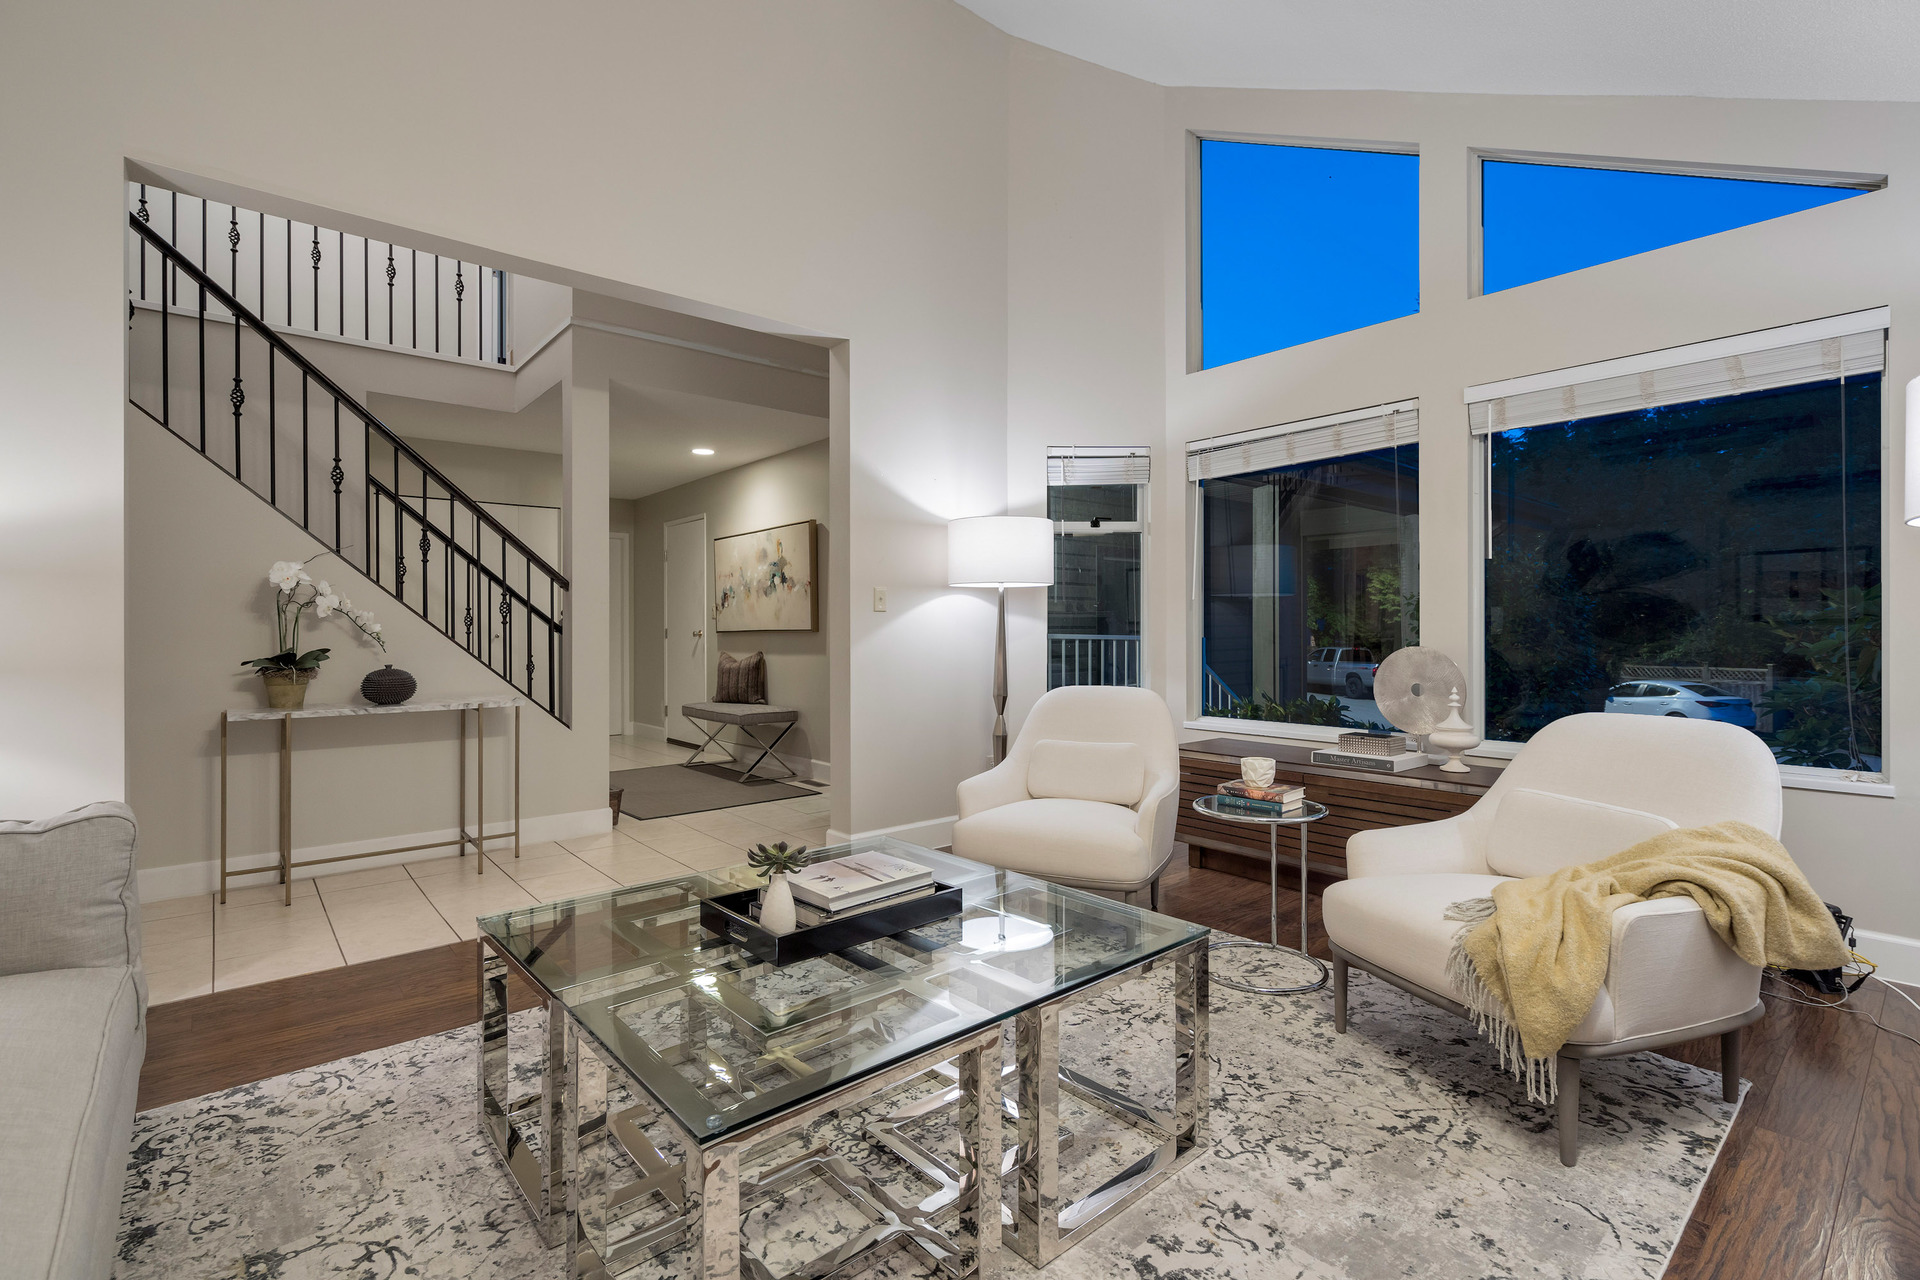 47a5e01 at 4753 Woodrow Crescent, Lynn Valley, North Vancouver